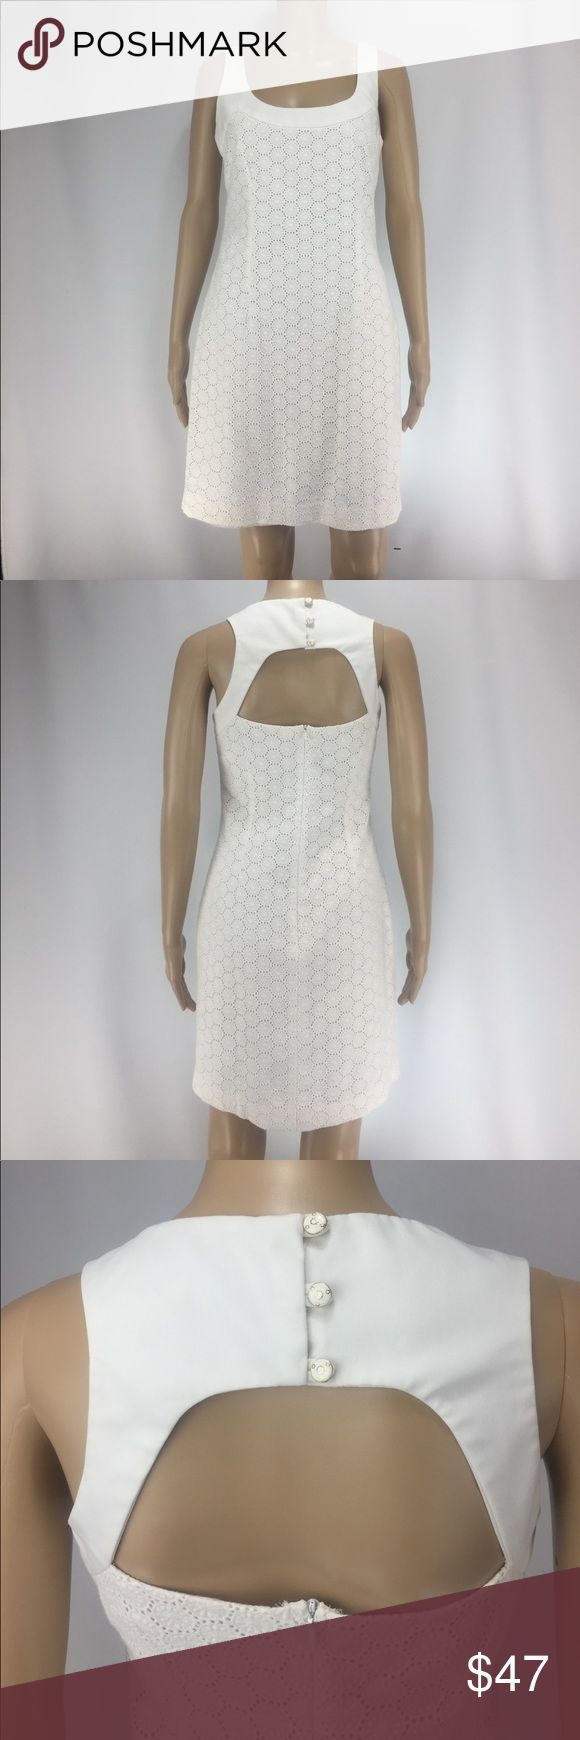 """TRINA TURK Dress! TRINA TURK Dress! Beautiful all white cotton dress. Size 6. Measurements are approximately: total length 34"""", chest 34"""", waist 32"""", hips 36"""". Fully lined. Features front darts, cut out back, and a 13"""" hidden zipper. Excellent used condition. See pics! Trina Turk Dresses Midi"""